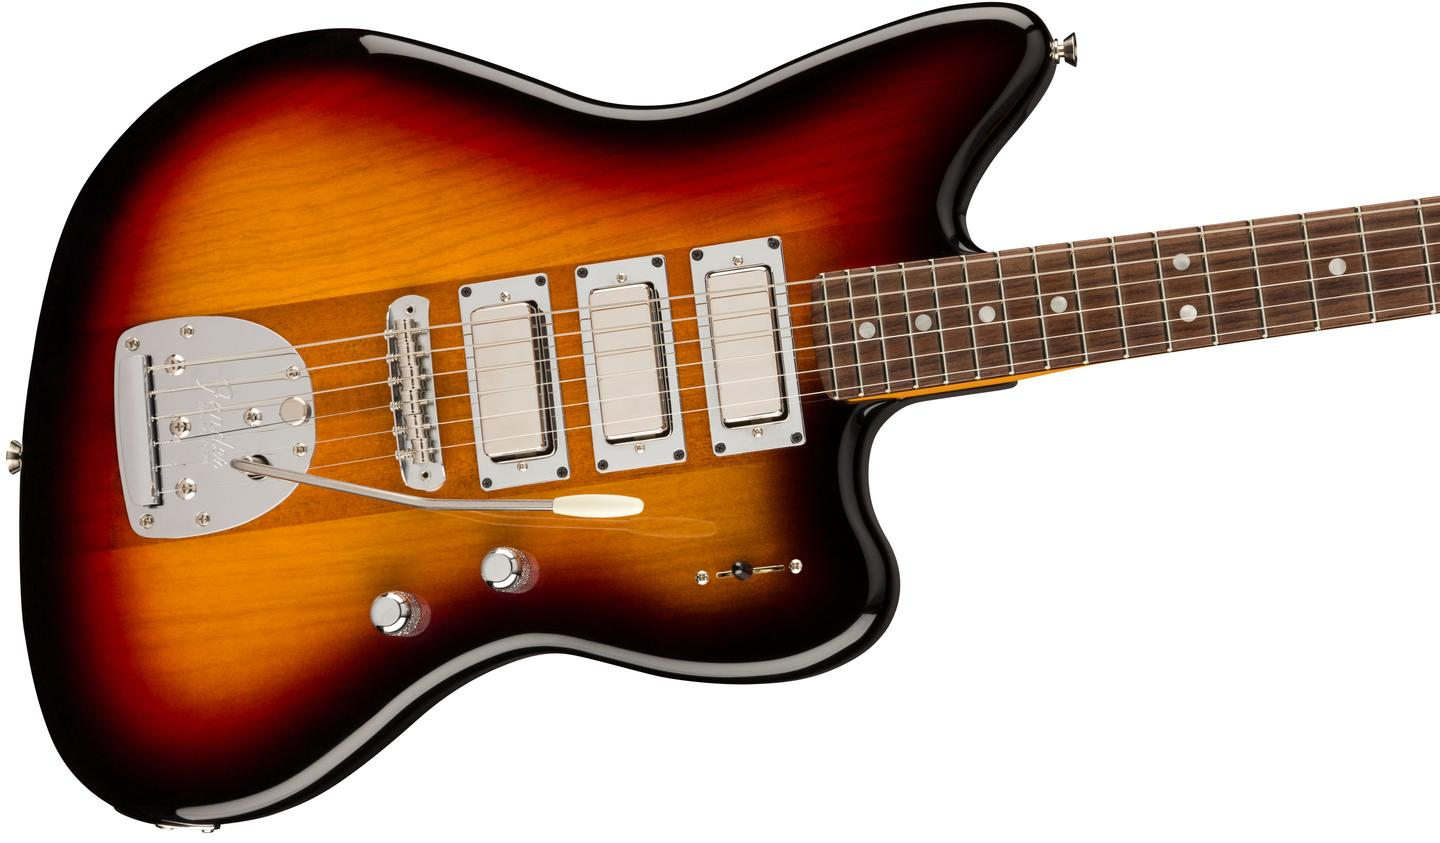 Instead of an alder body, the Spark-O-Matic Jazzmaster rocks a mahogany core flanked by chambered ash wings